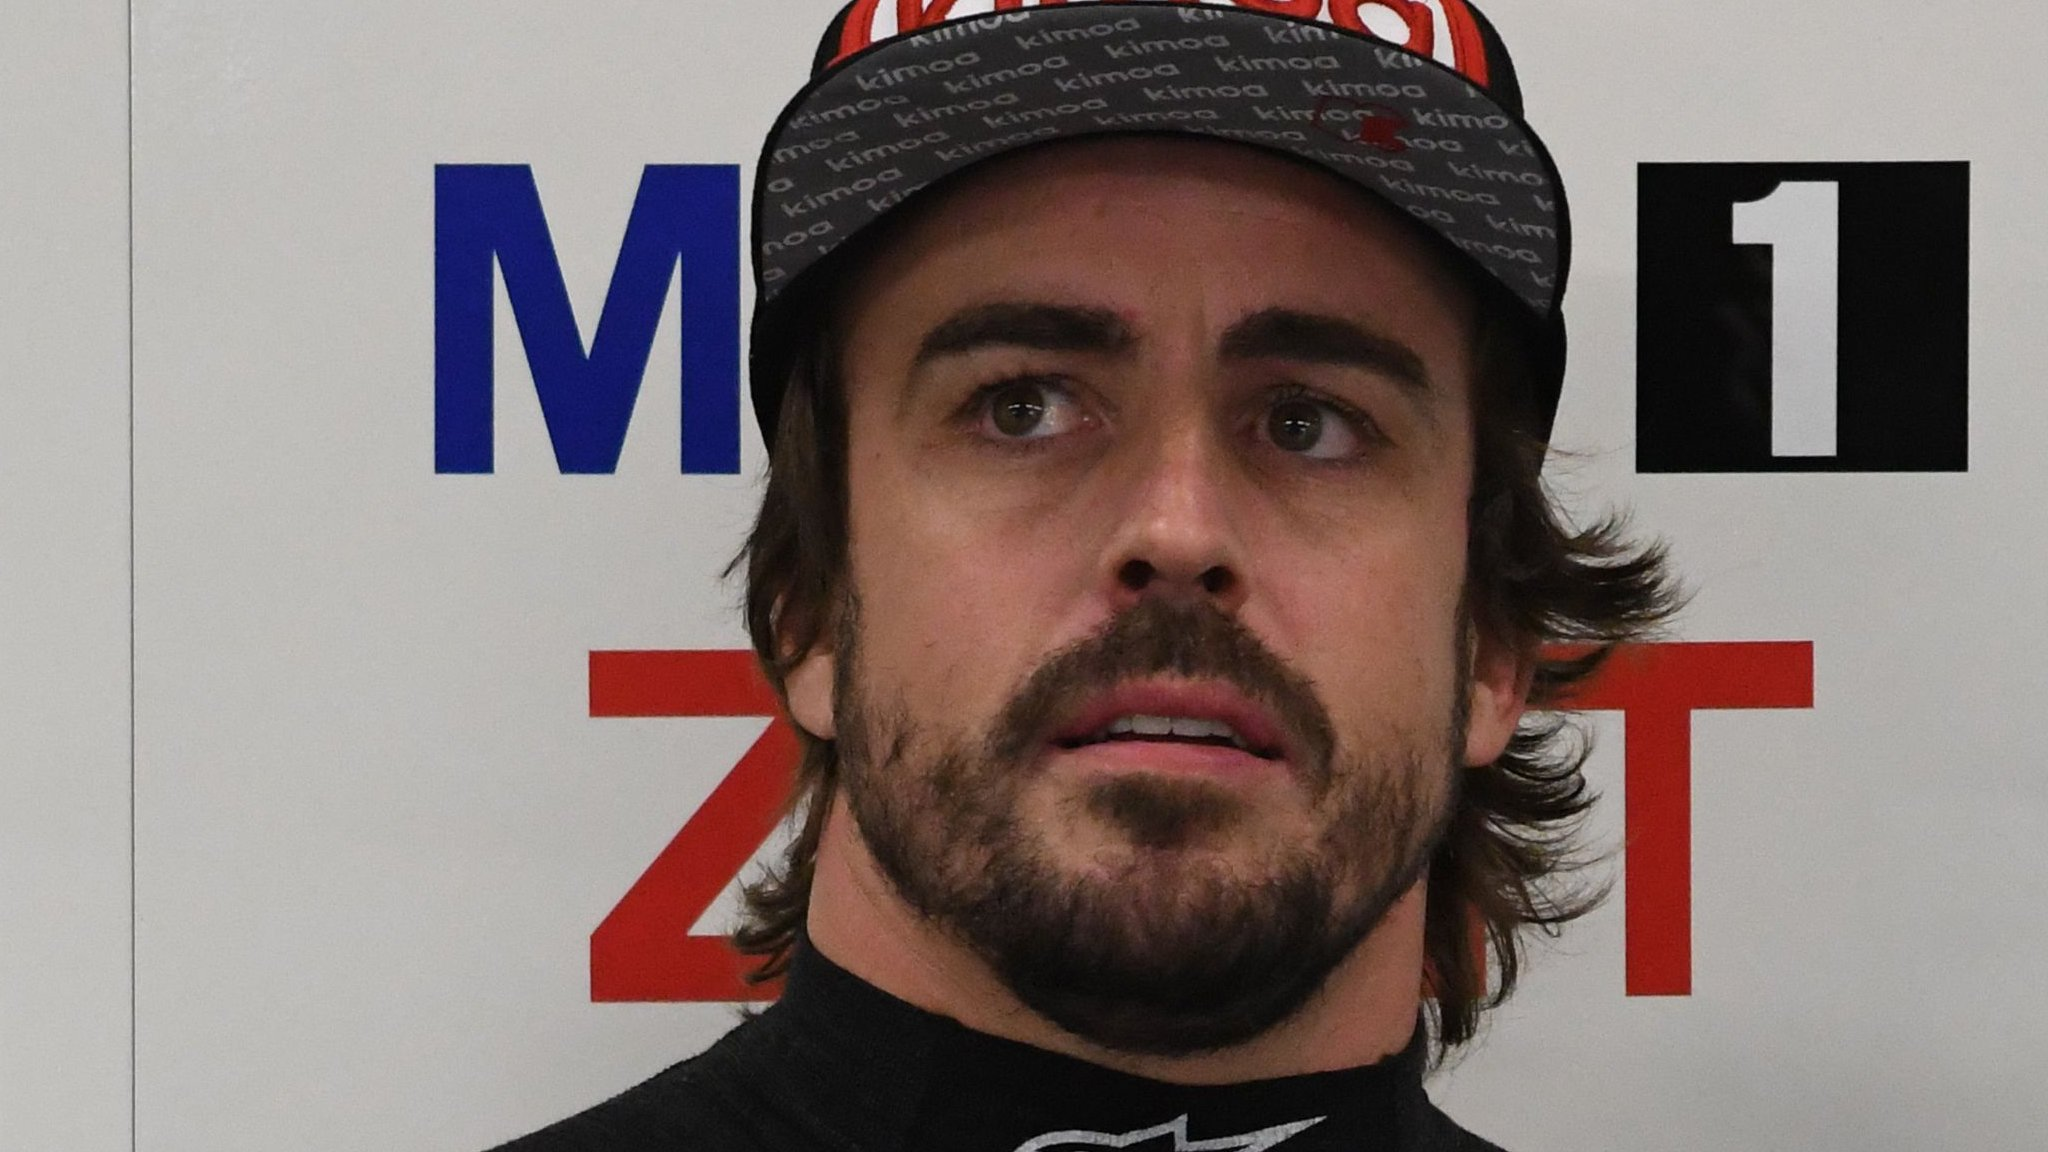 Alonso wins Le Mans 24 Hours for second leg of 'triple crown'